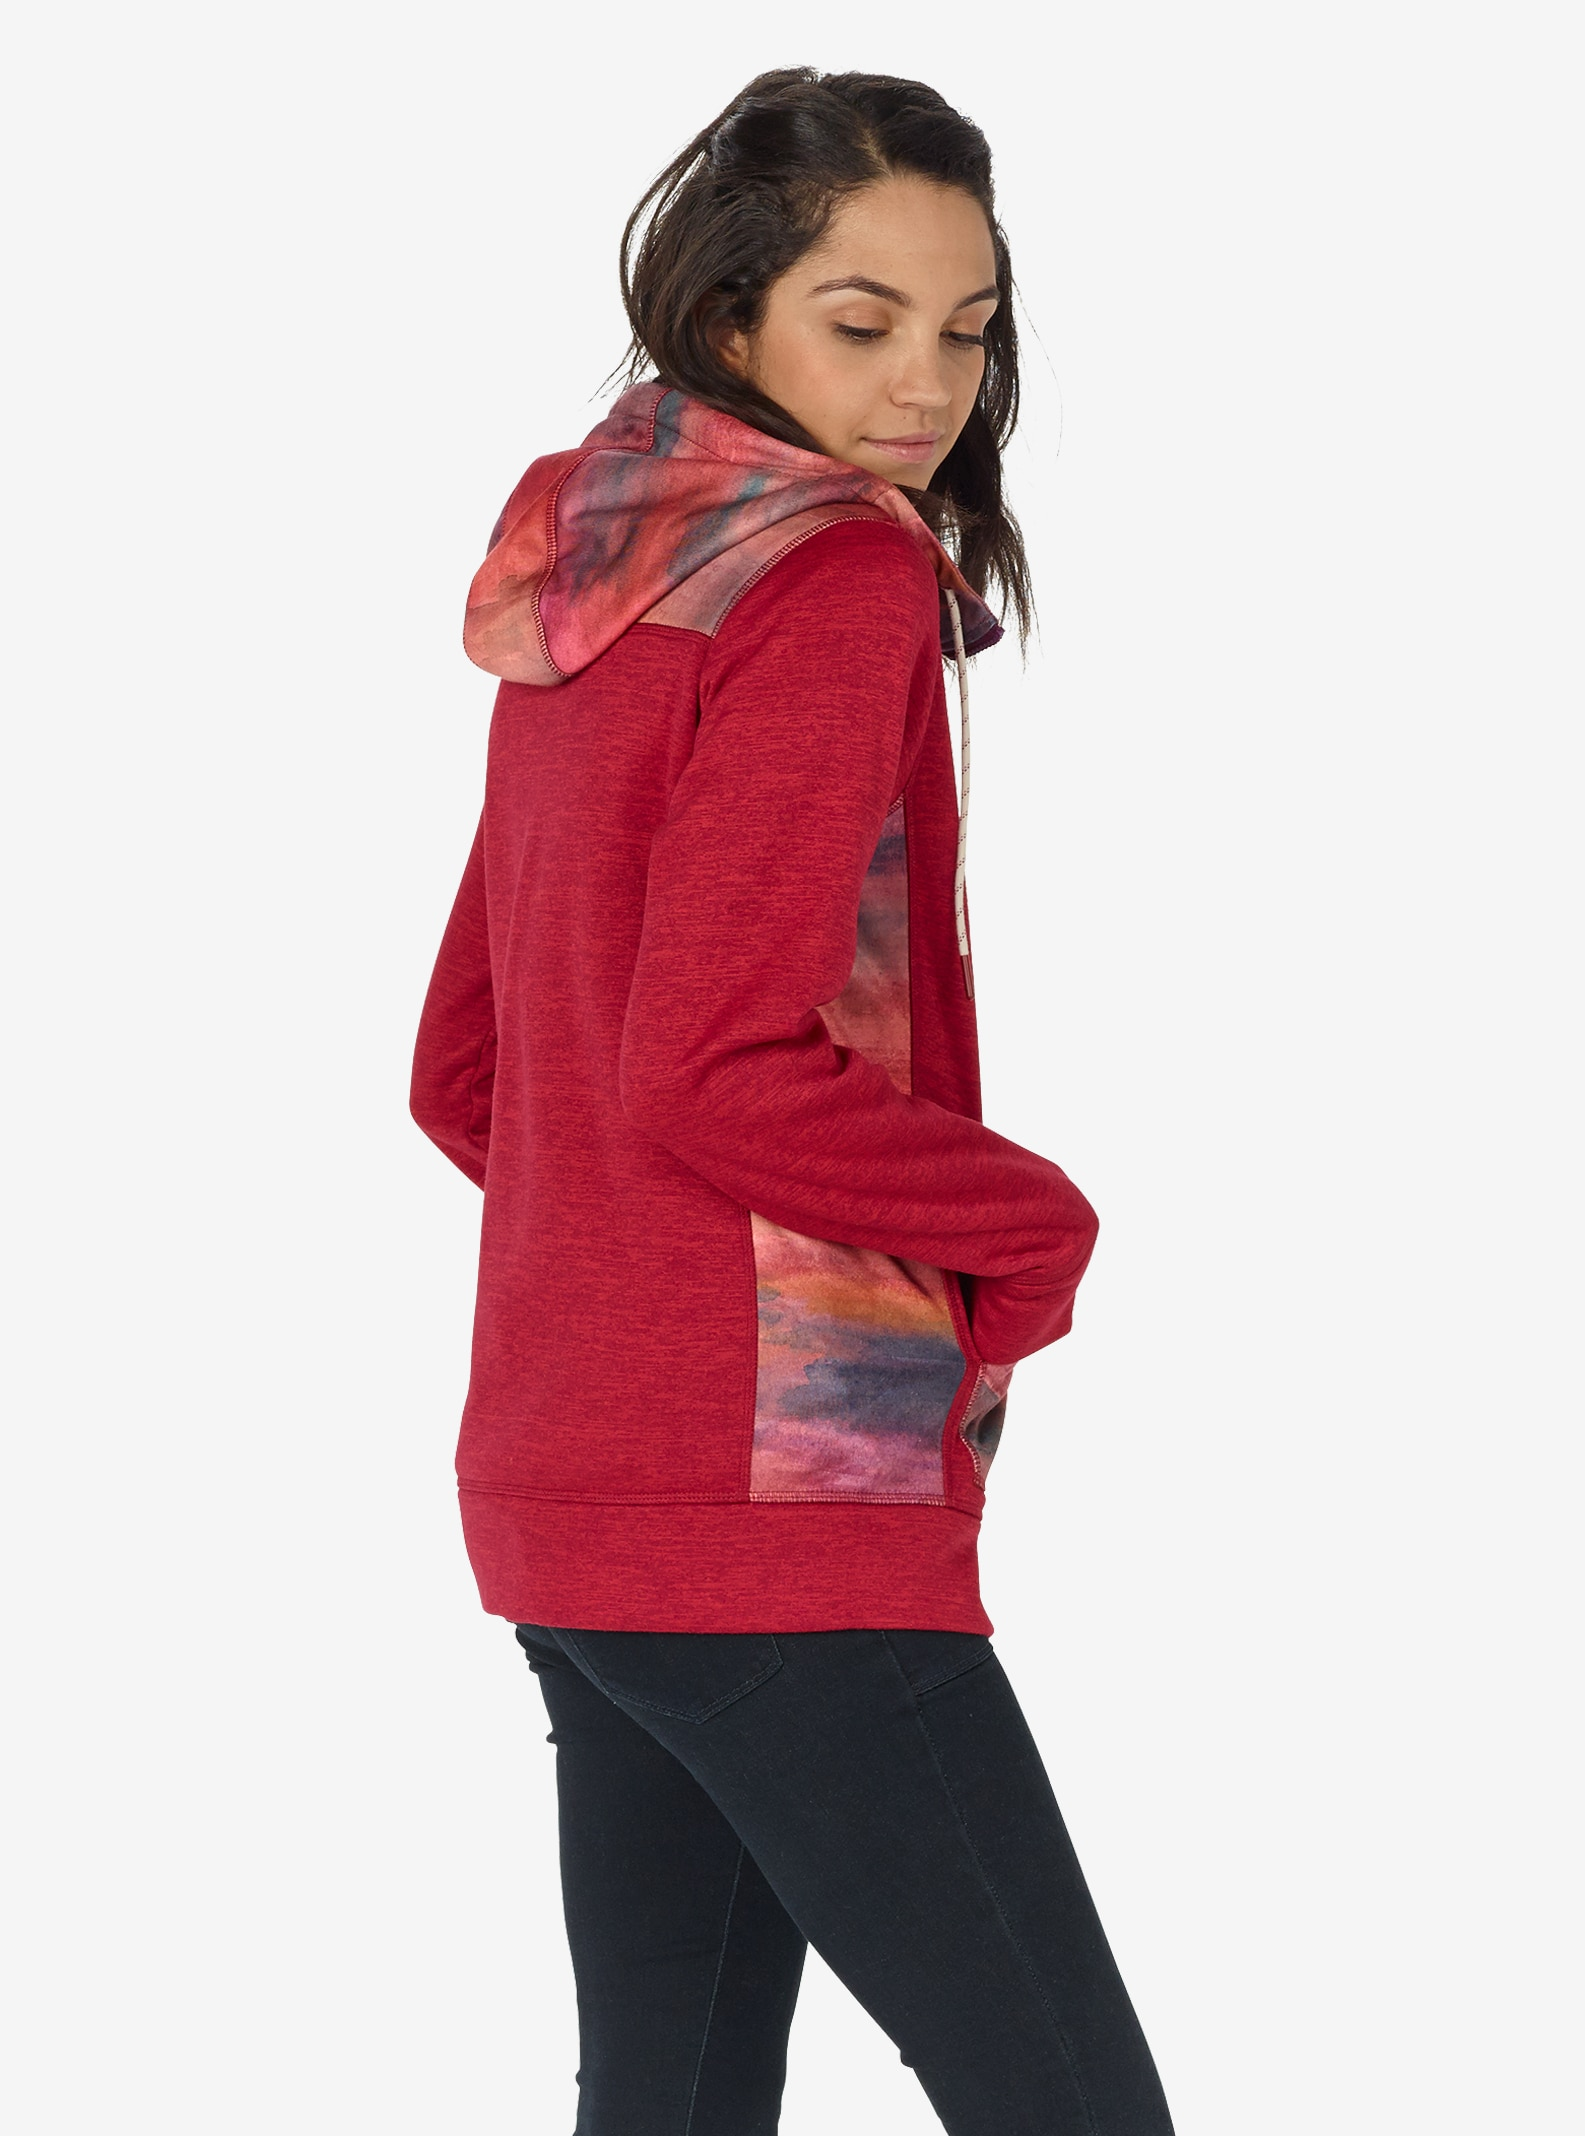 Women's Burton Quartz Full-Zip shown in Anemone Heather